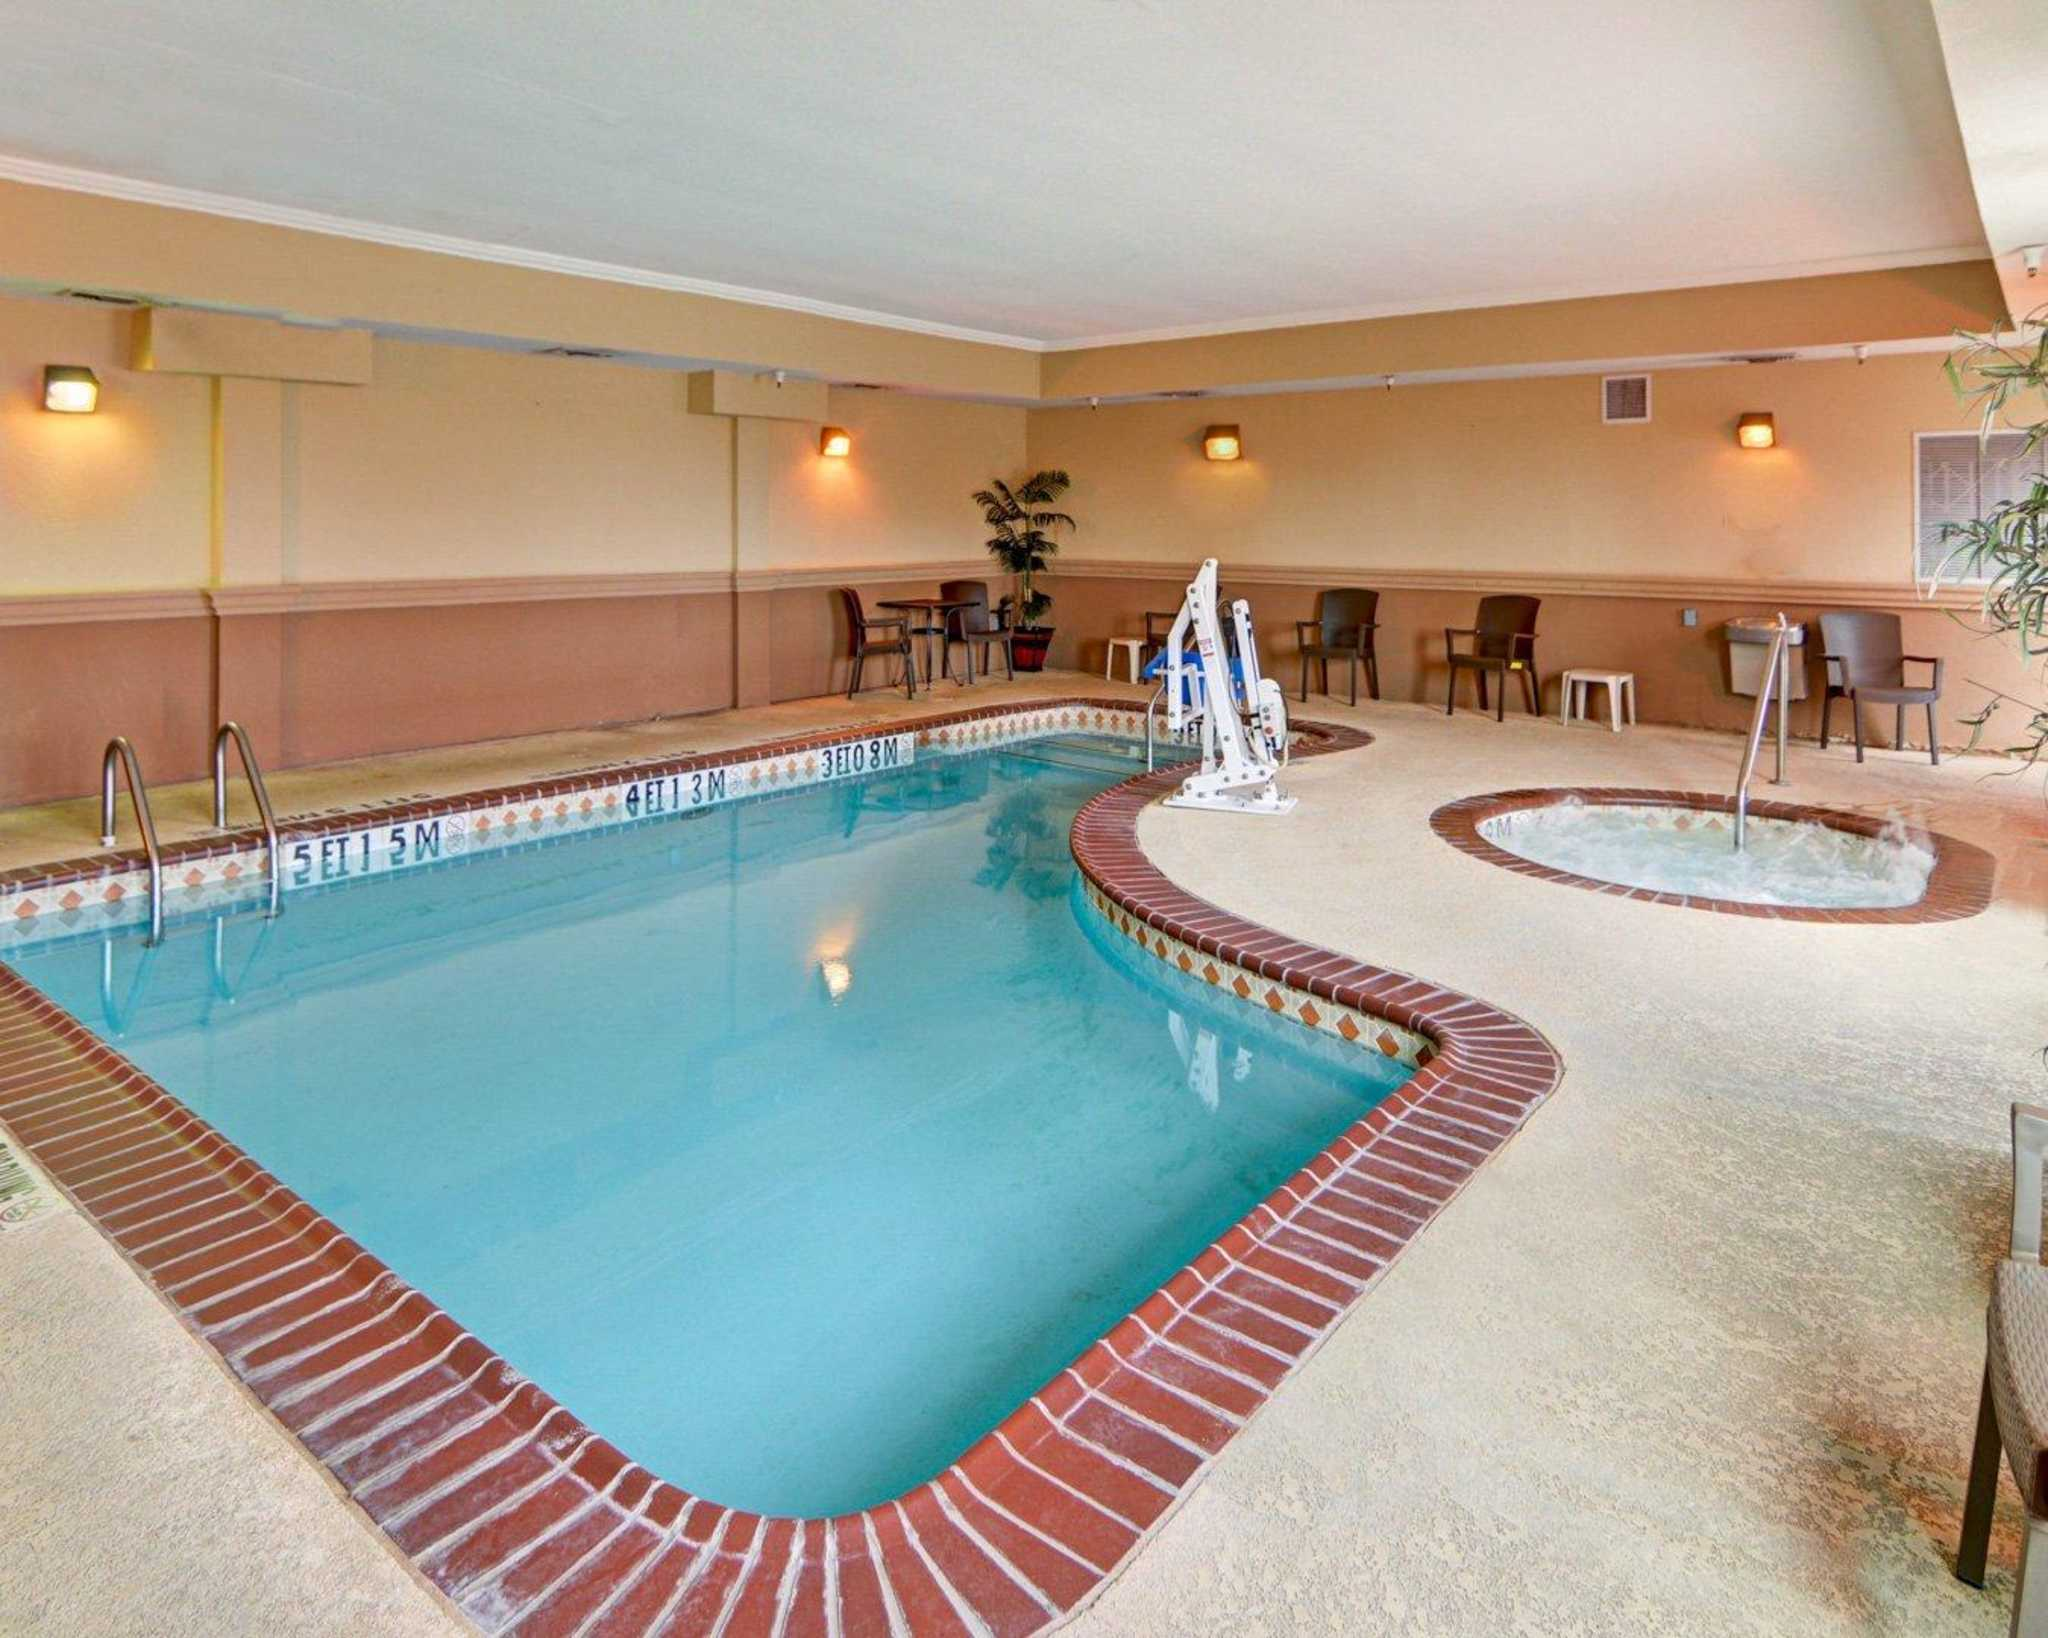 Hotels Near Cowboys Stadium With Indoor Pool